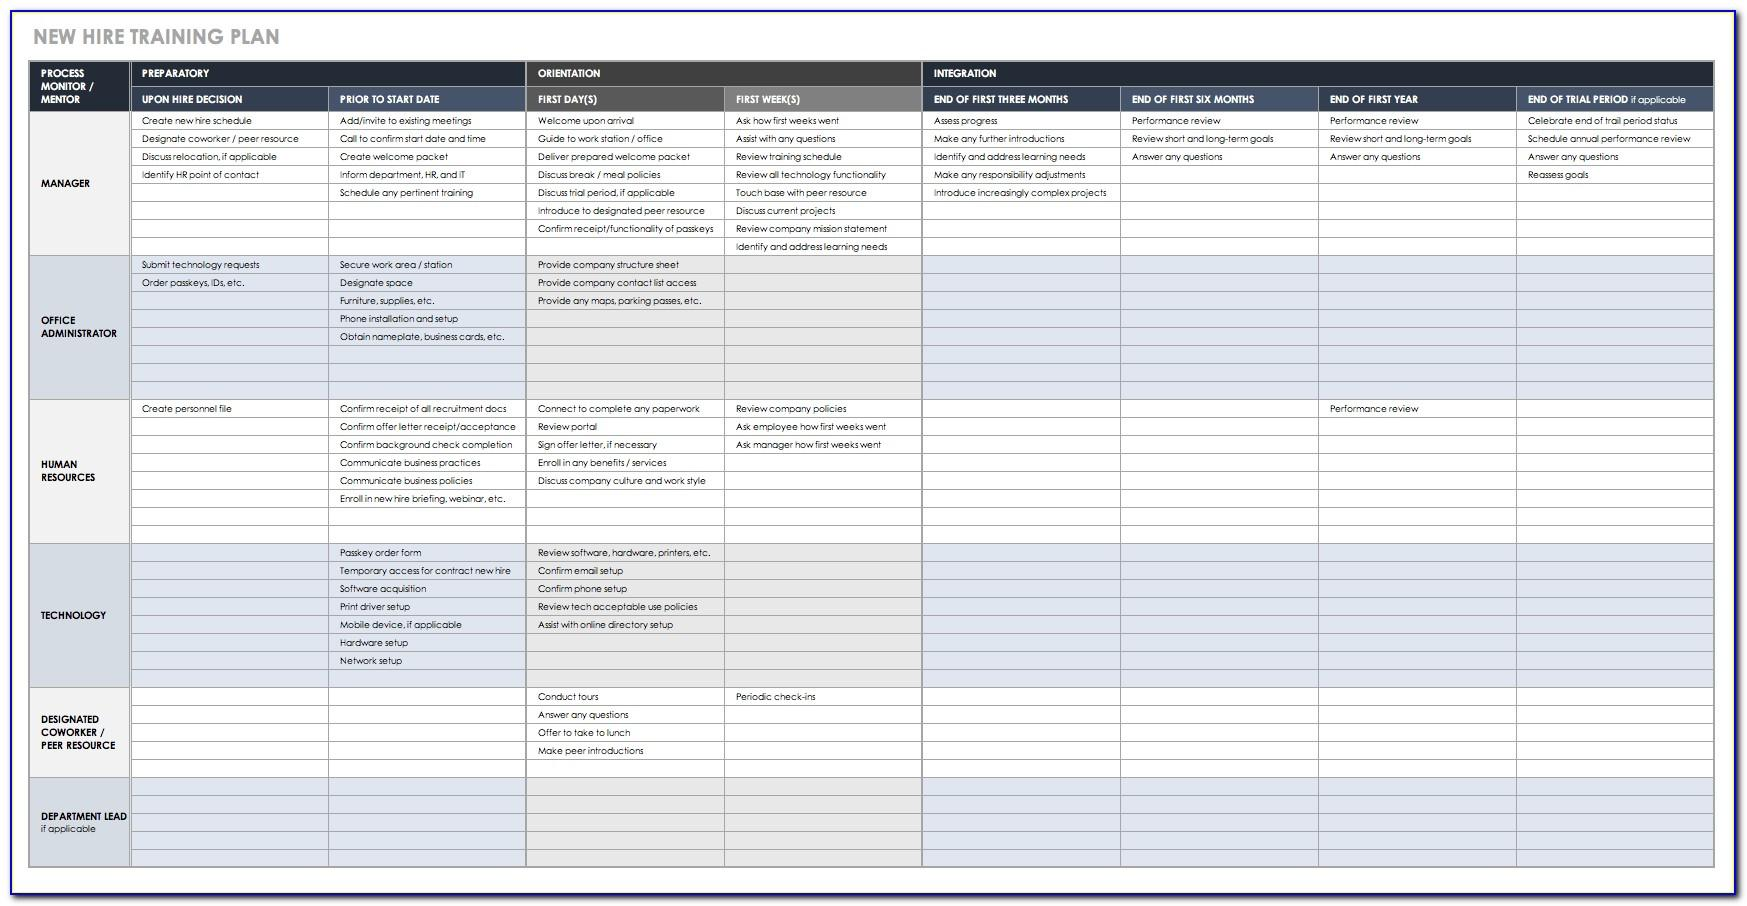 Employee Training Plan Template Excel Download   vincegray30